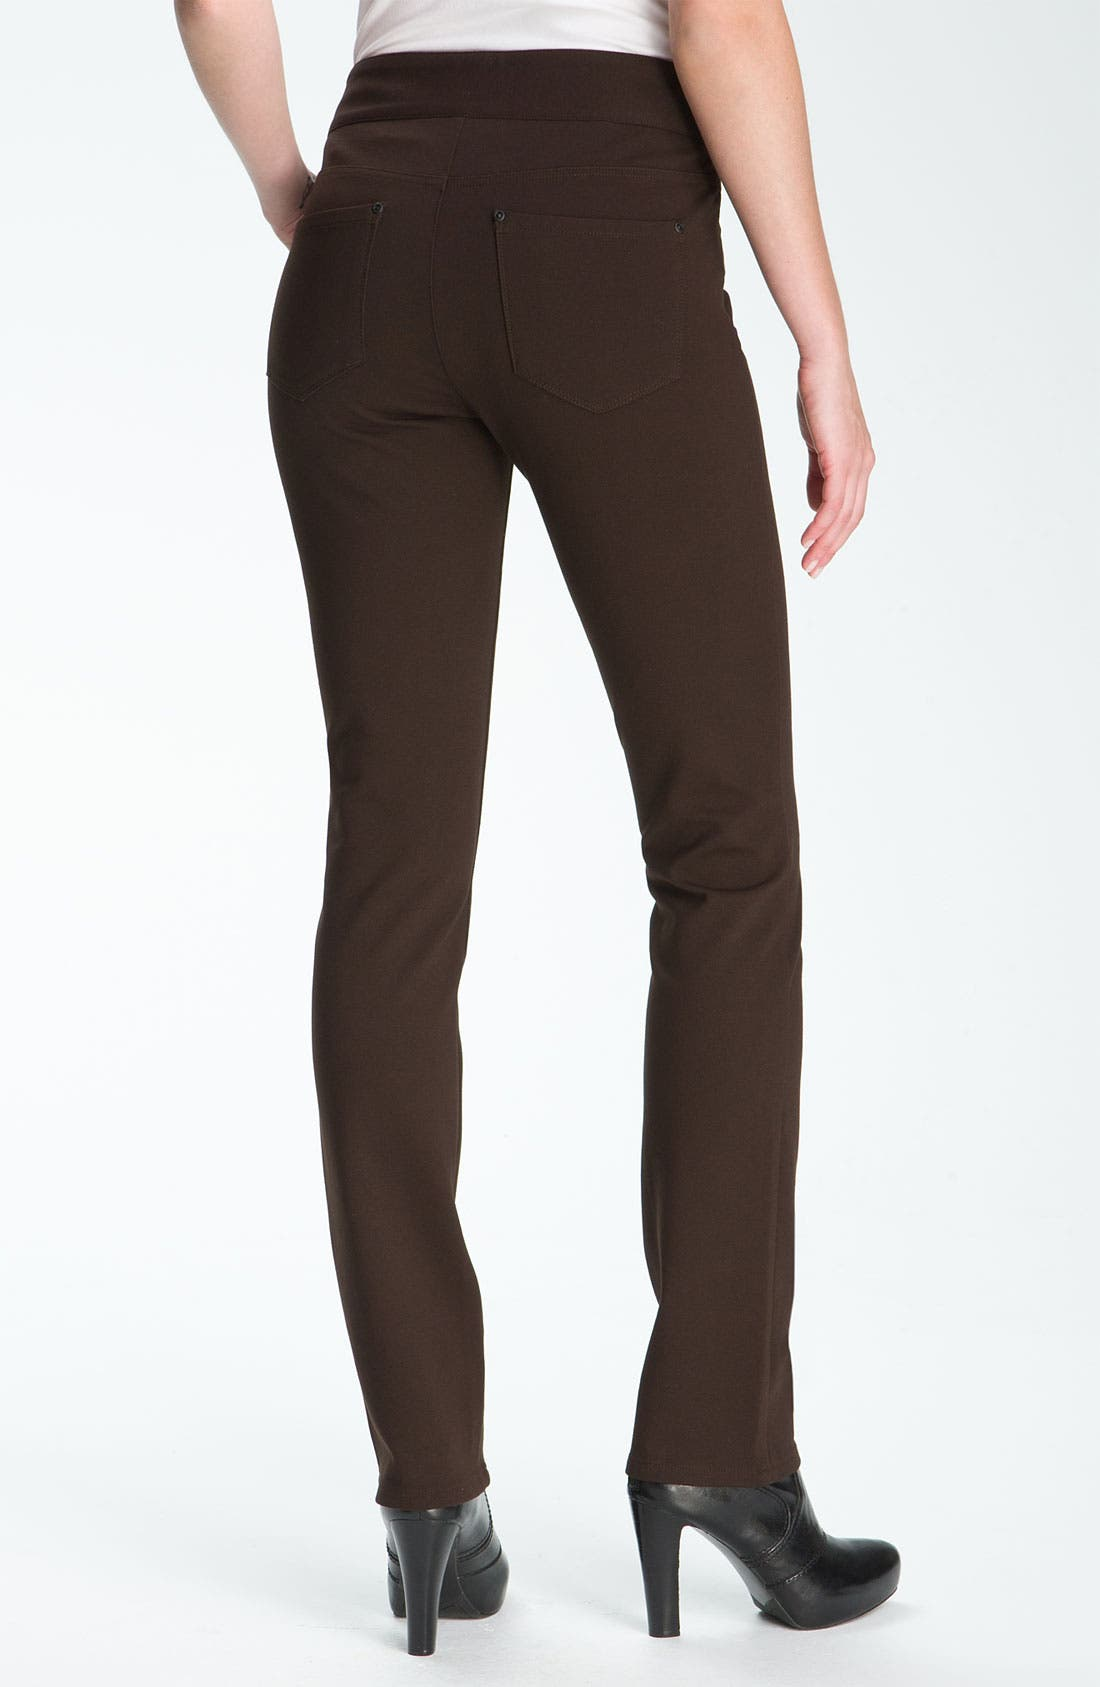 Alternate Image 1 Selected - NYDJ 'Natasha' Skinny Ponte Pants (Petite)